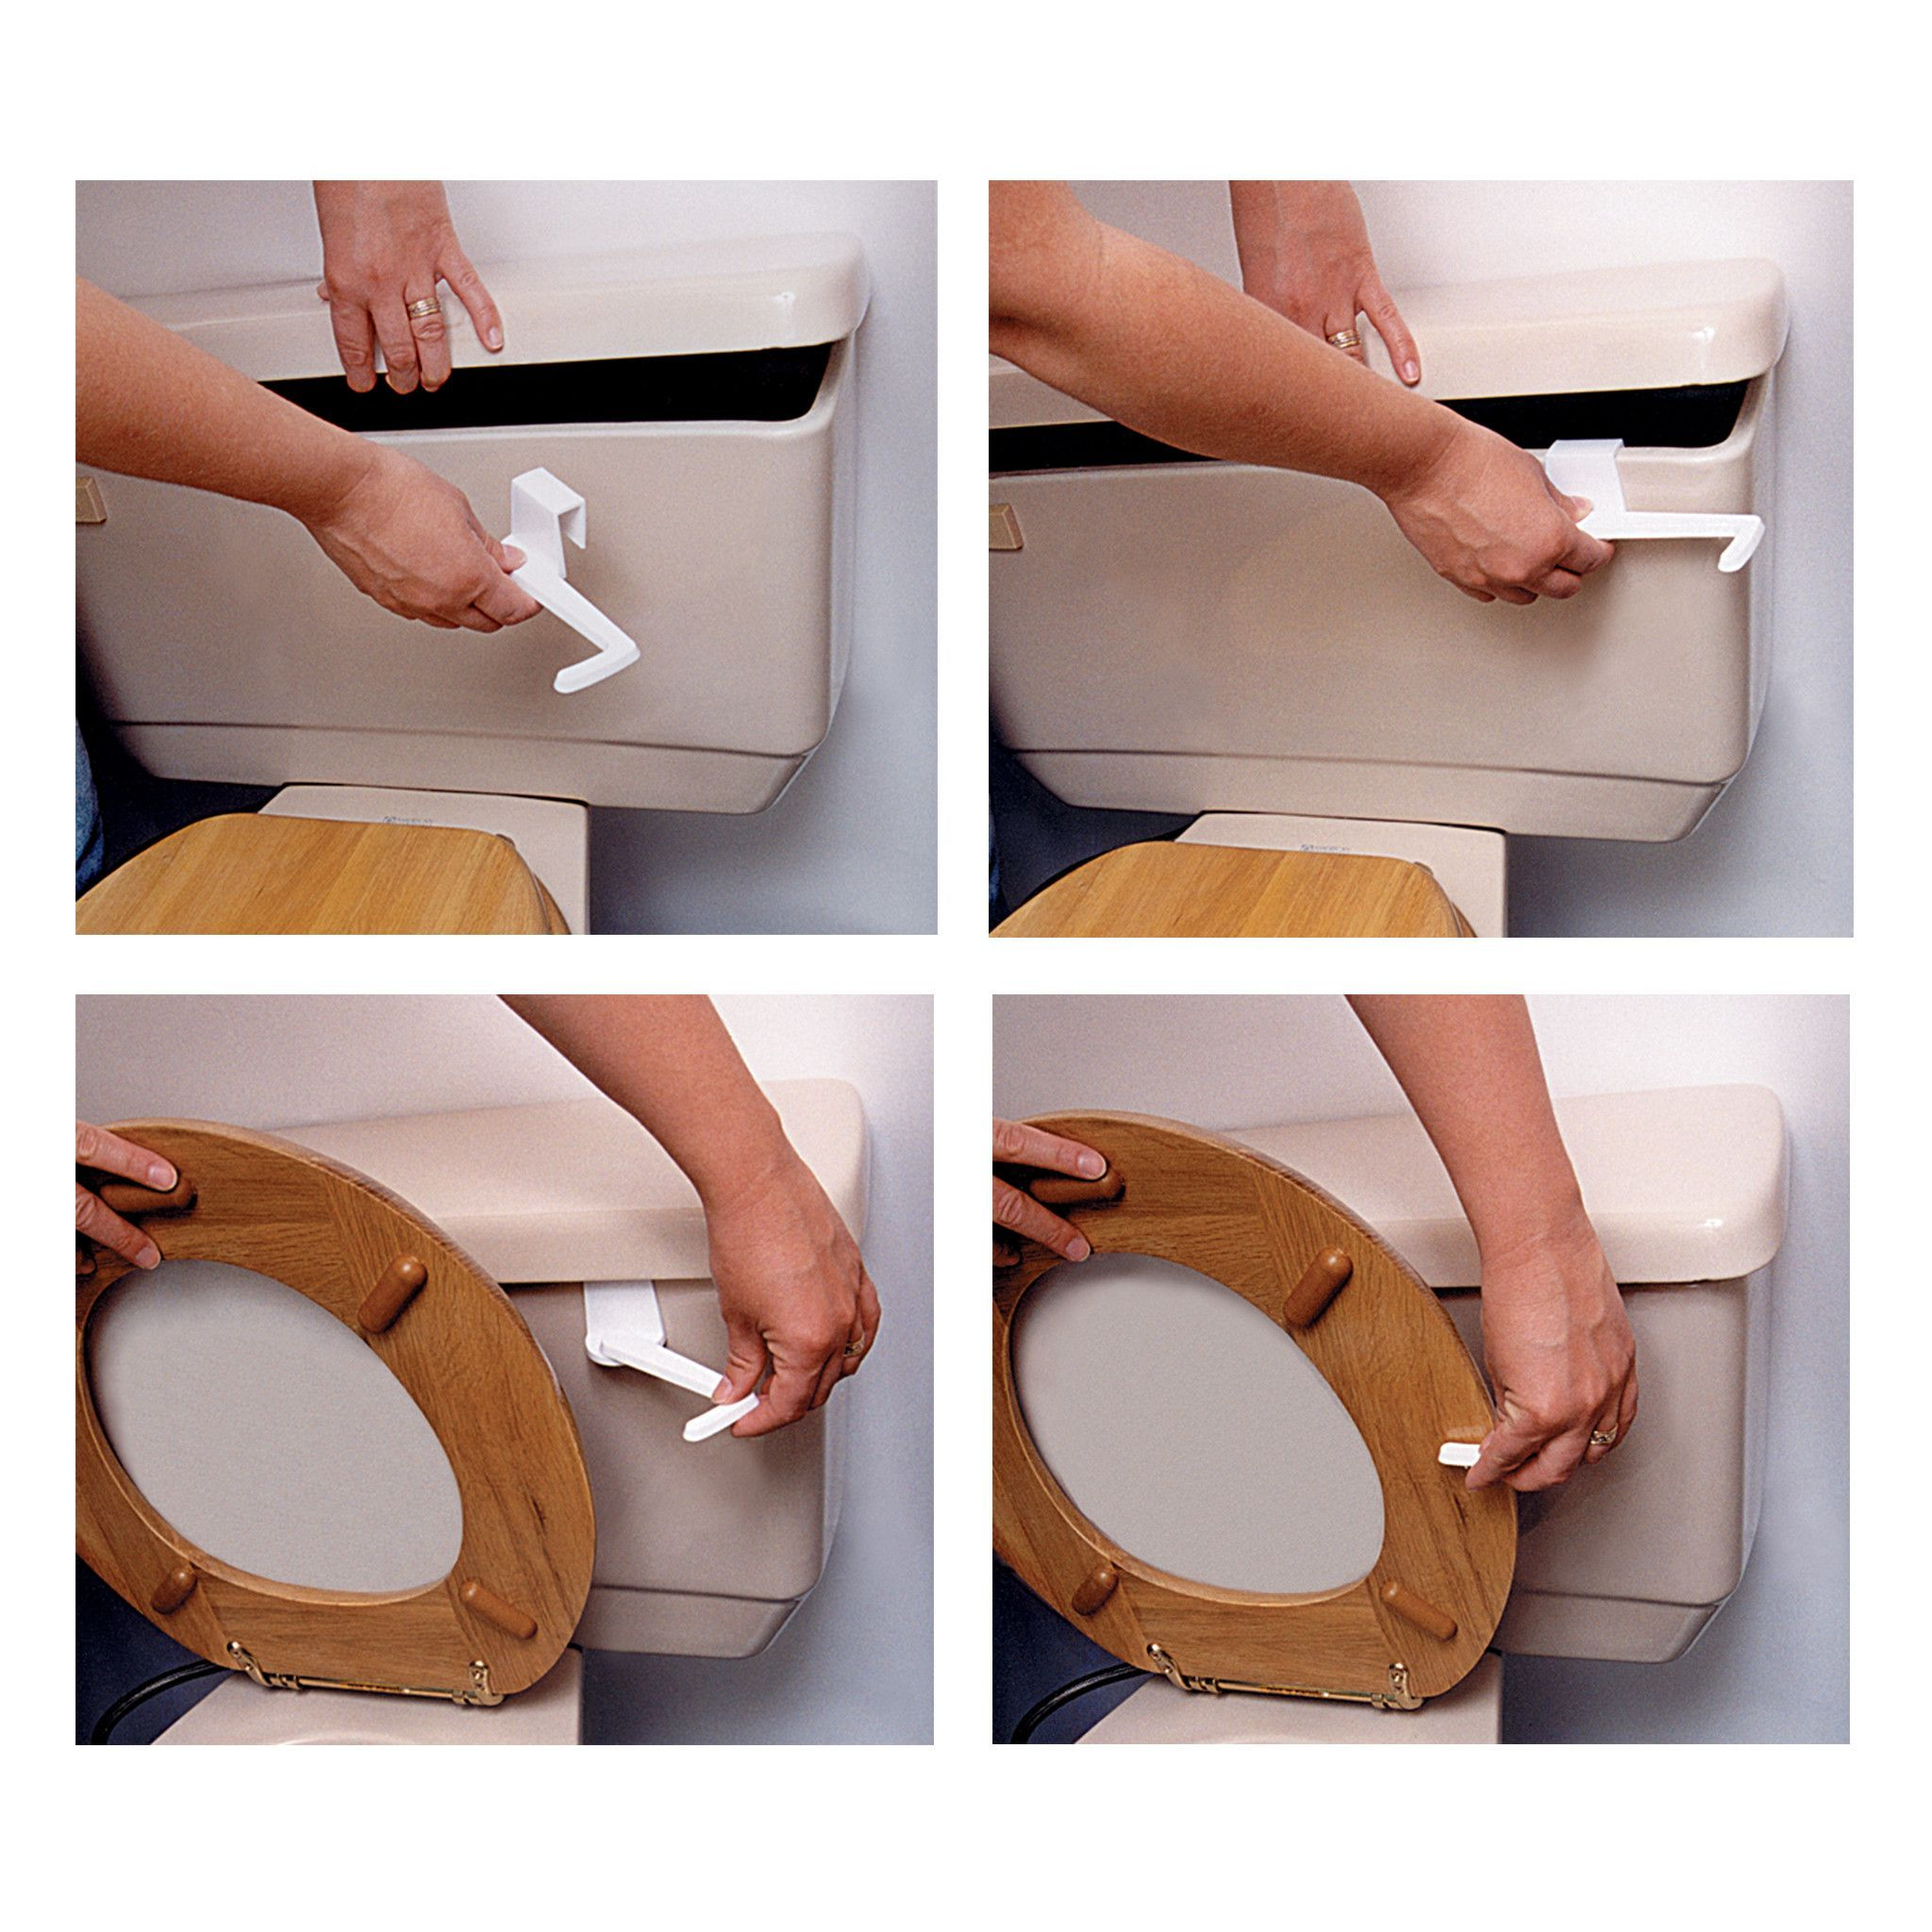 Does Your Toilet Seat Refuse To Stay Upright On Its Own Try The Toilet Seat Holder Easy To Install Remove Buy Now F Toilet Seat Holder Toilet Seat Holder